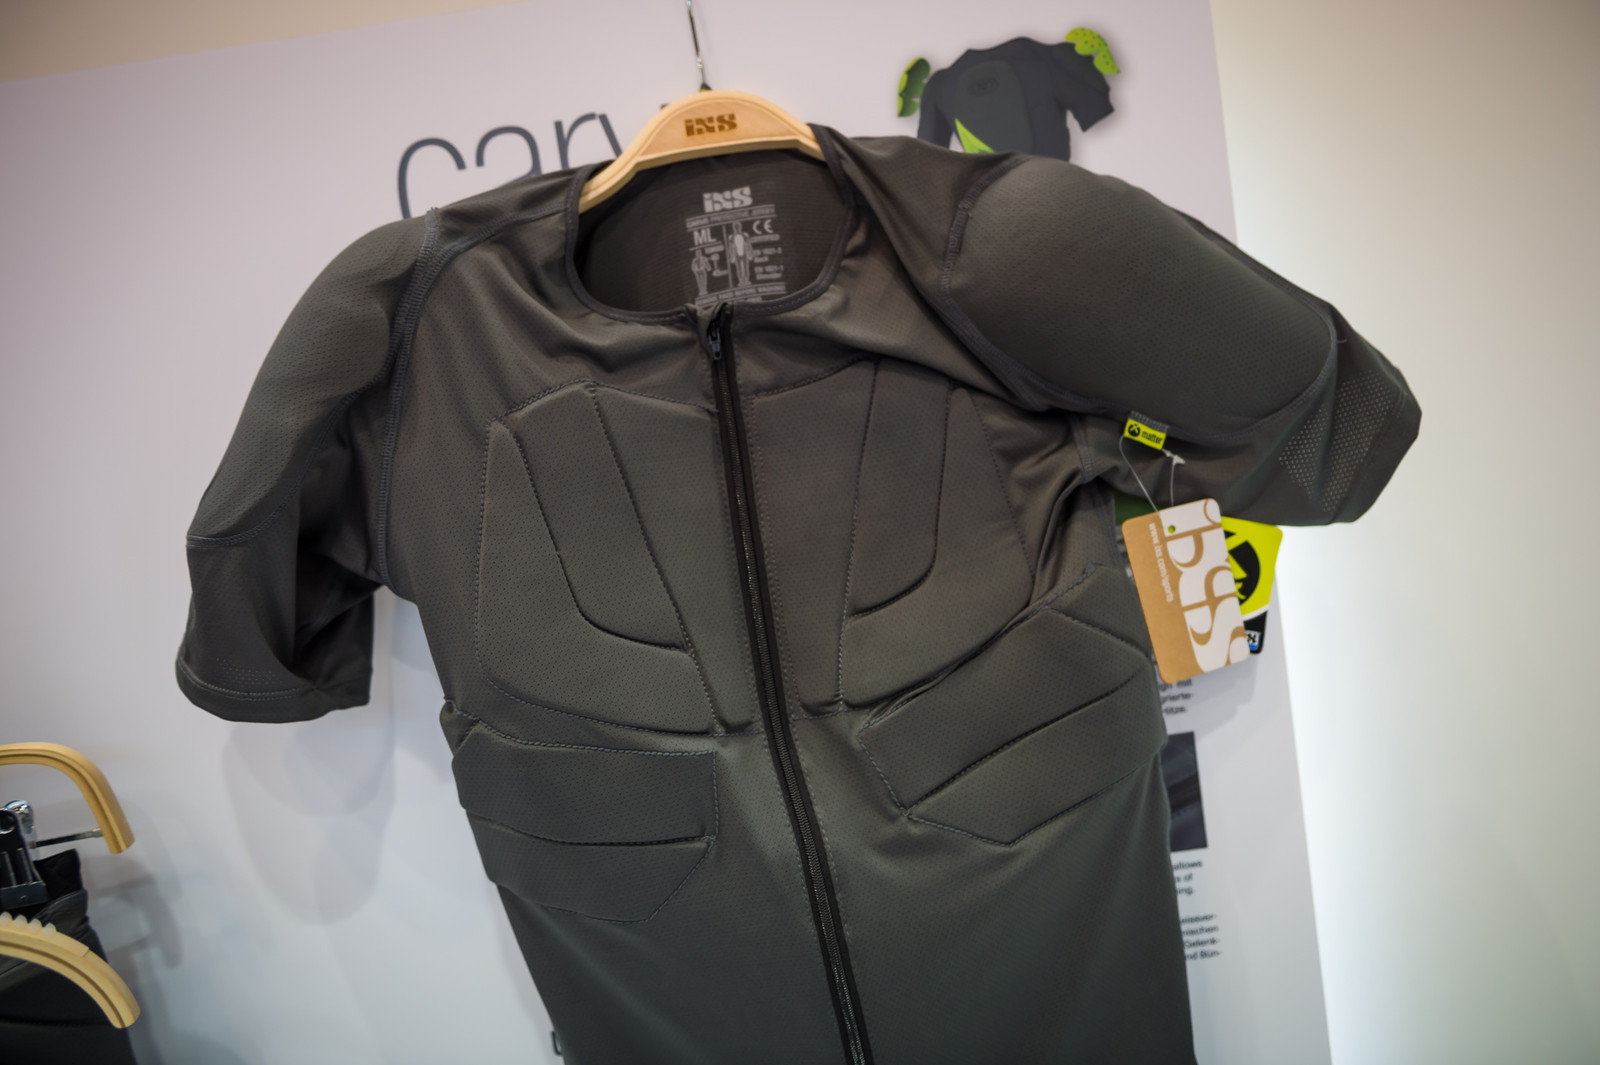 2017 iXS Protective Gear and Apparel - EUROBIKE - 2017 Mountain Bike Apparel and Protective Gear - Mountain Biking Pictures - Vital MTB